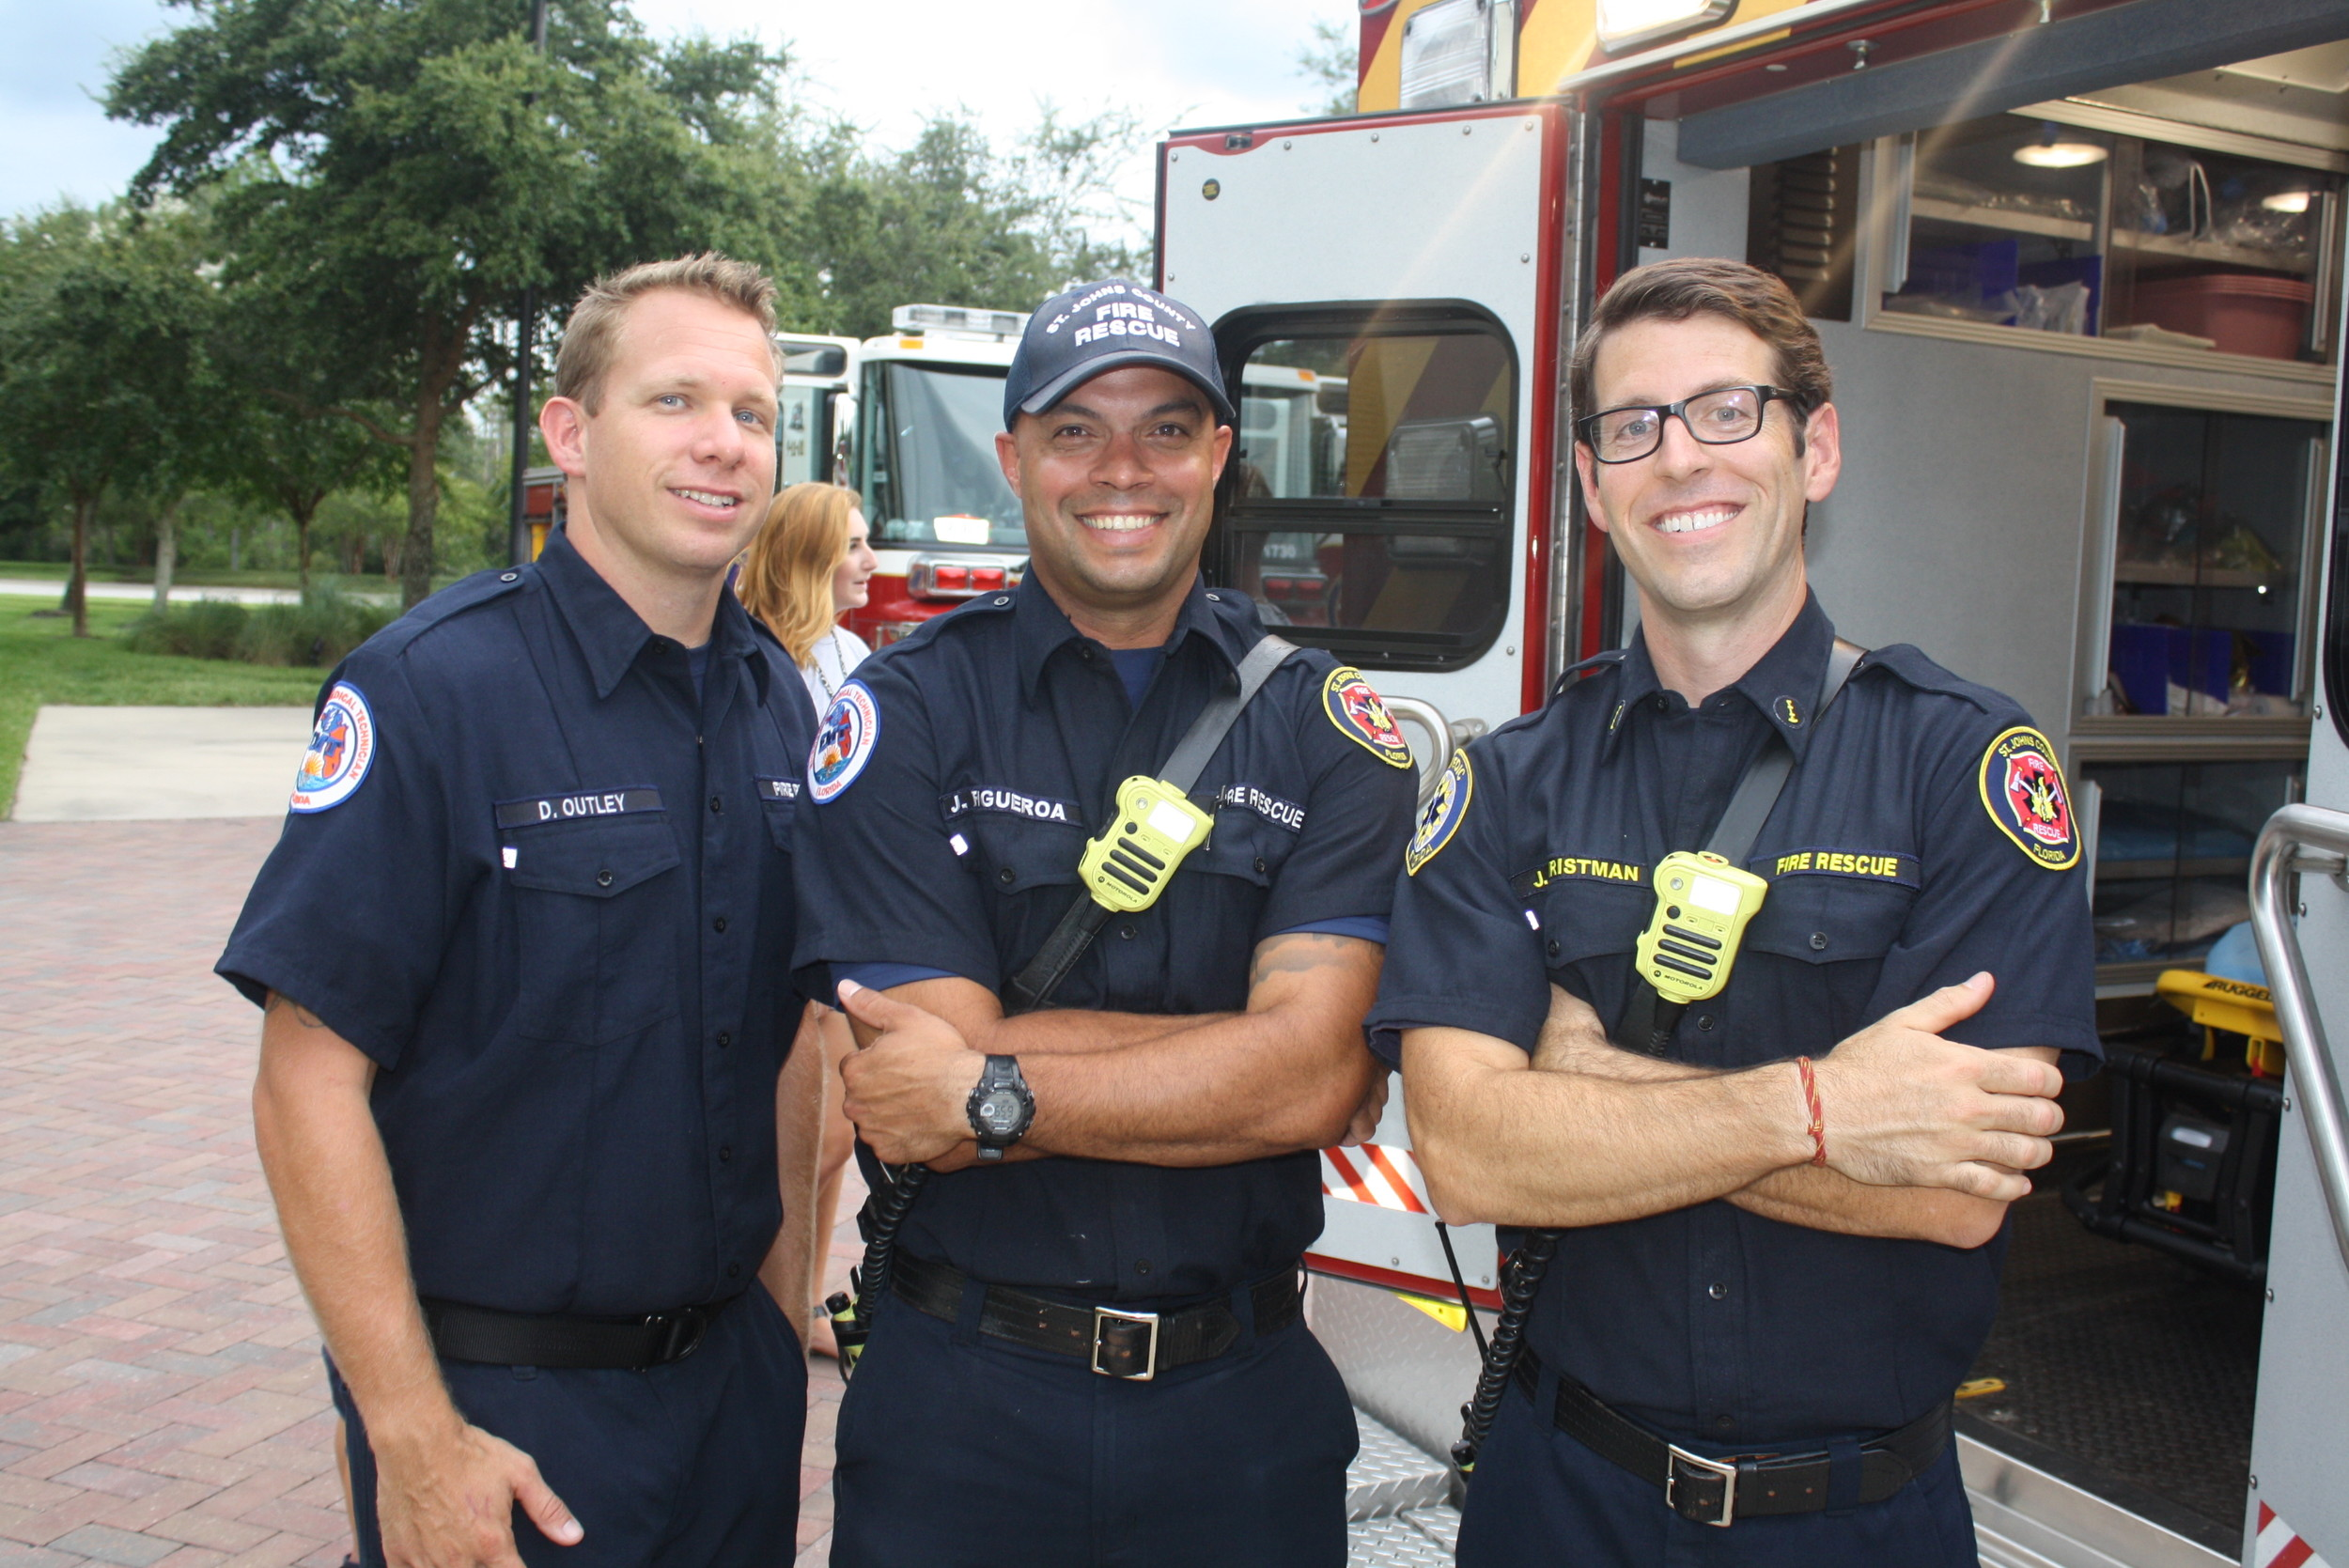 Daniel Outley, Javier Figueroa and James Christman from St. Johns County Fire Rescue